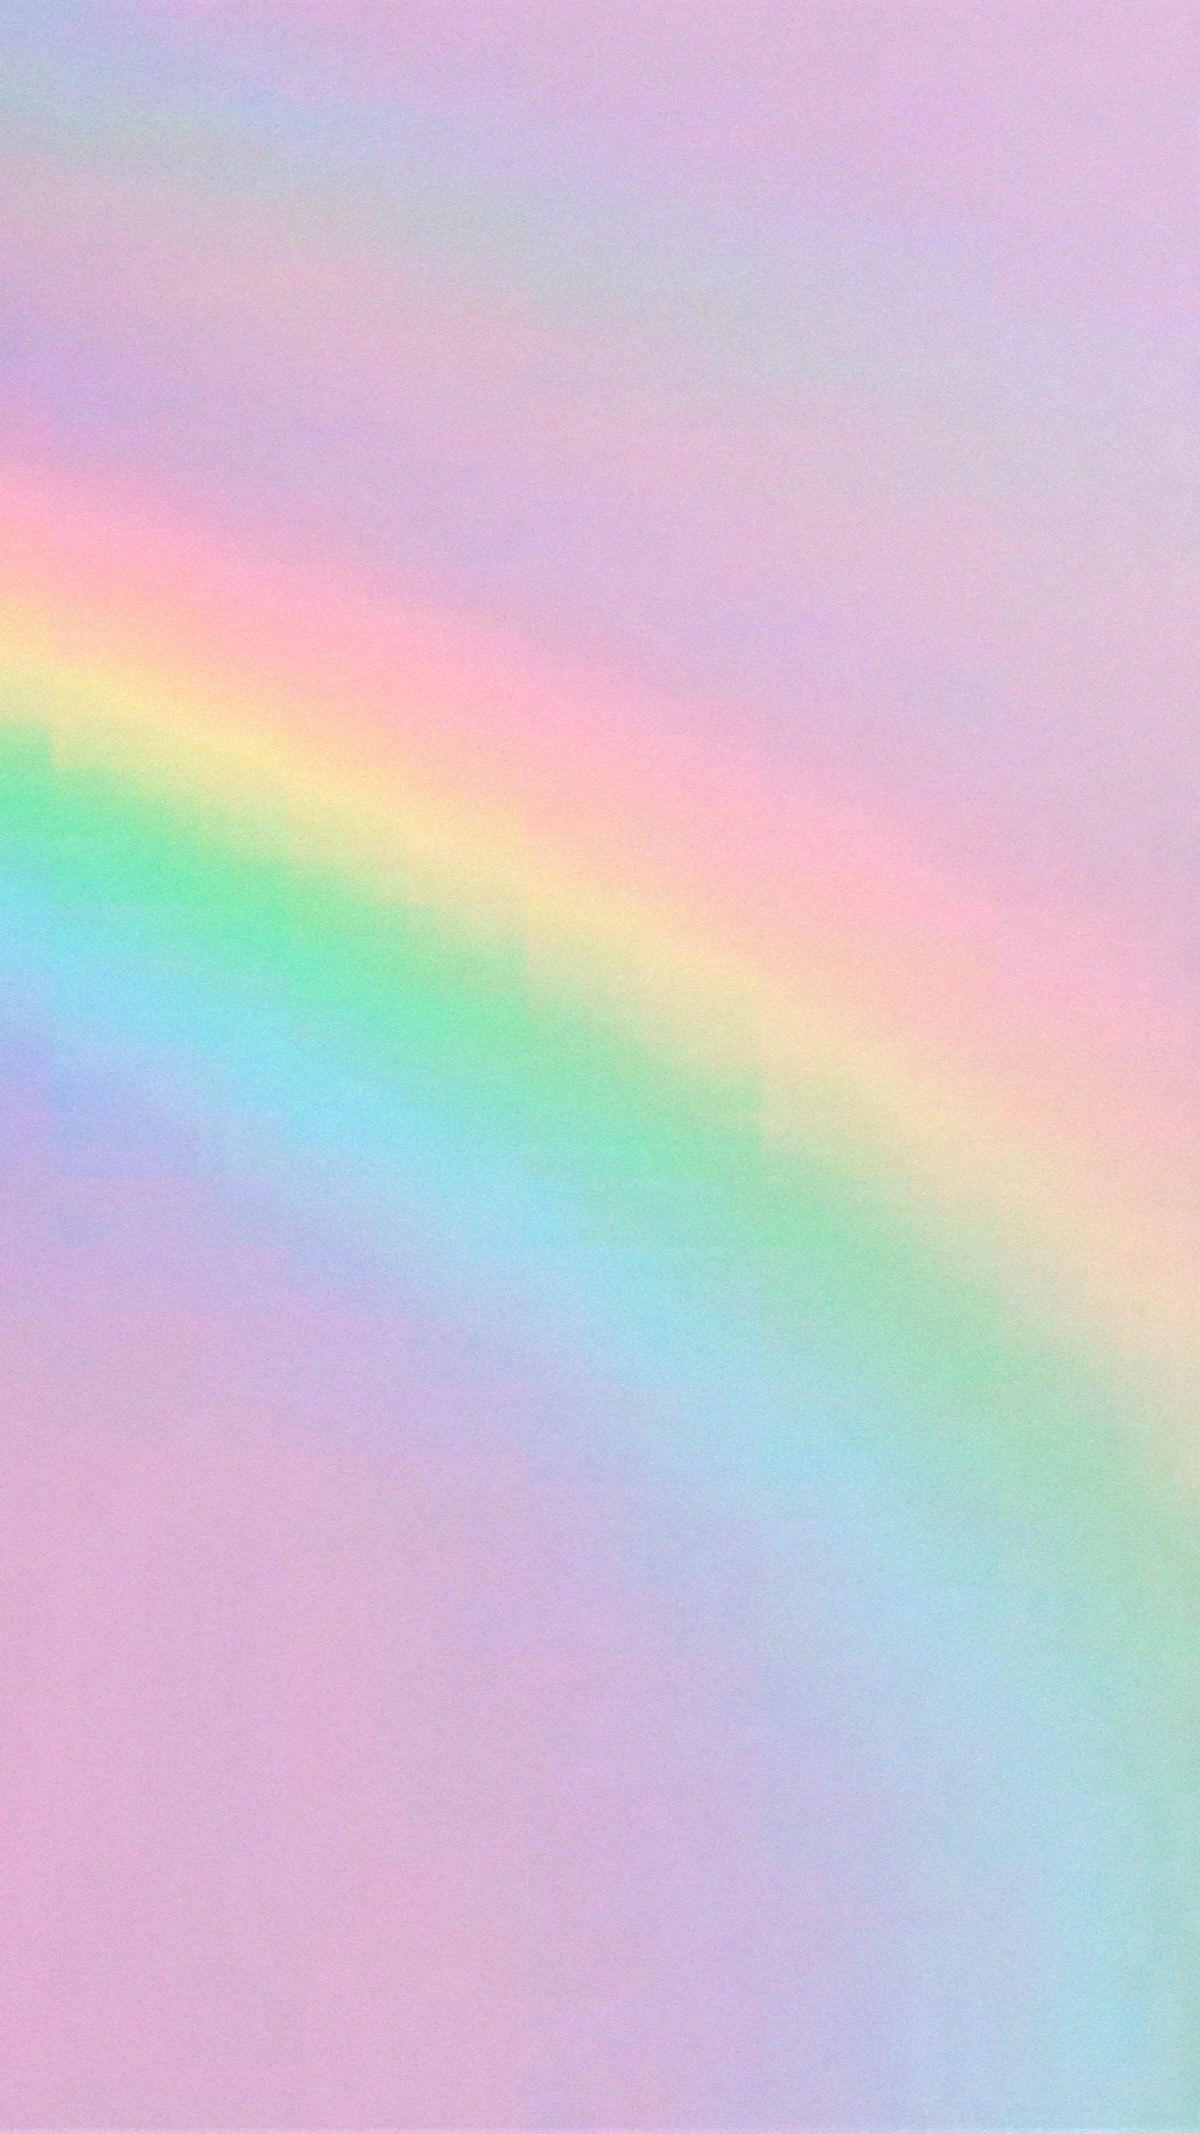 rainbow backgrounds in 2018 pinterest iphone